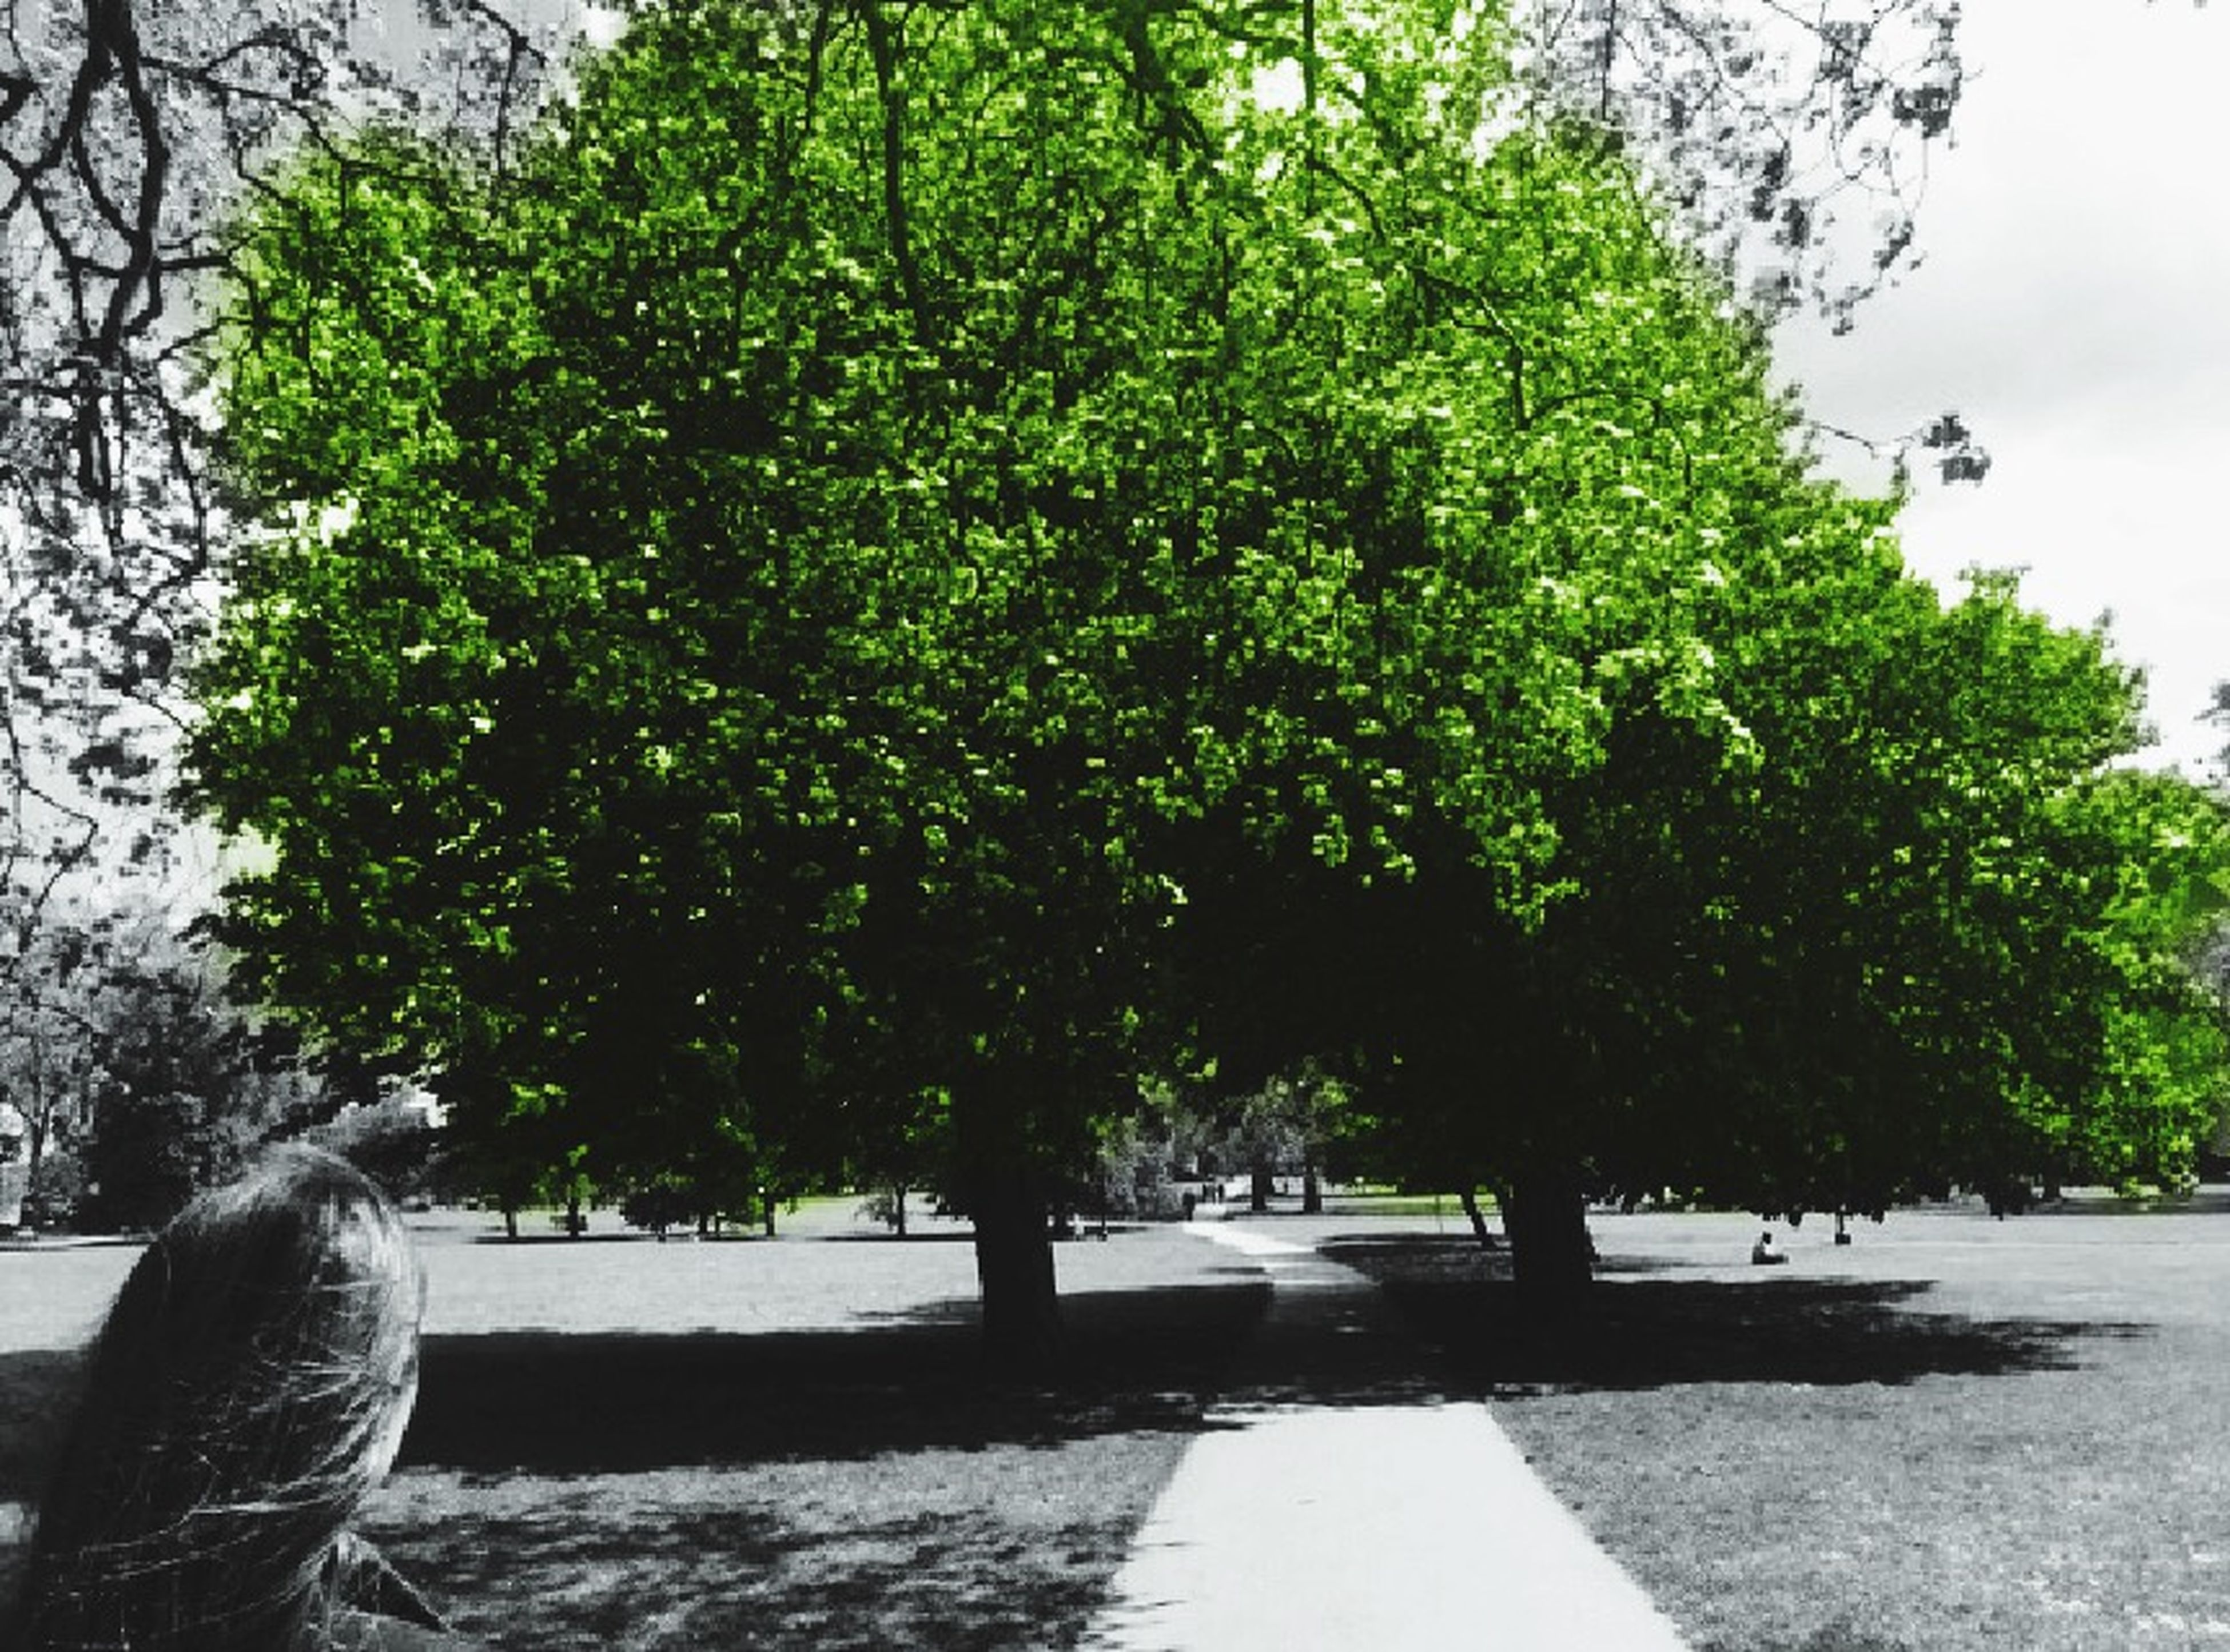 tree, growth, footpath, sunlight, park - man made space, the way forward, shadow, street, road, nature, green color, day, branch, outdoors, incidental people, tree trunk, plant, tranquility, park, no people